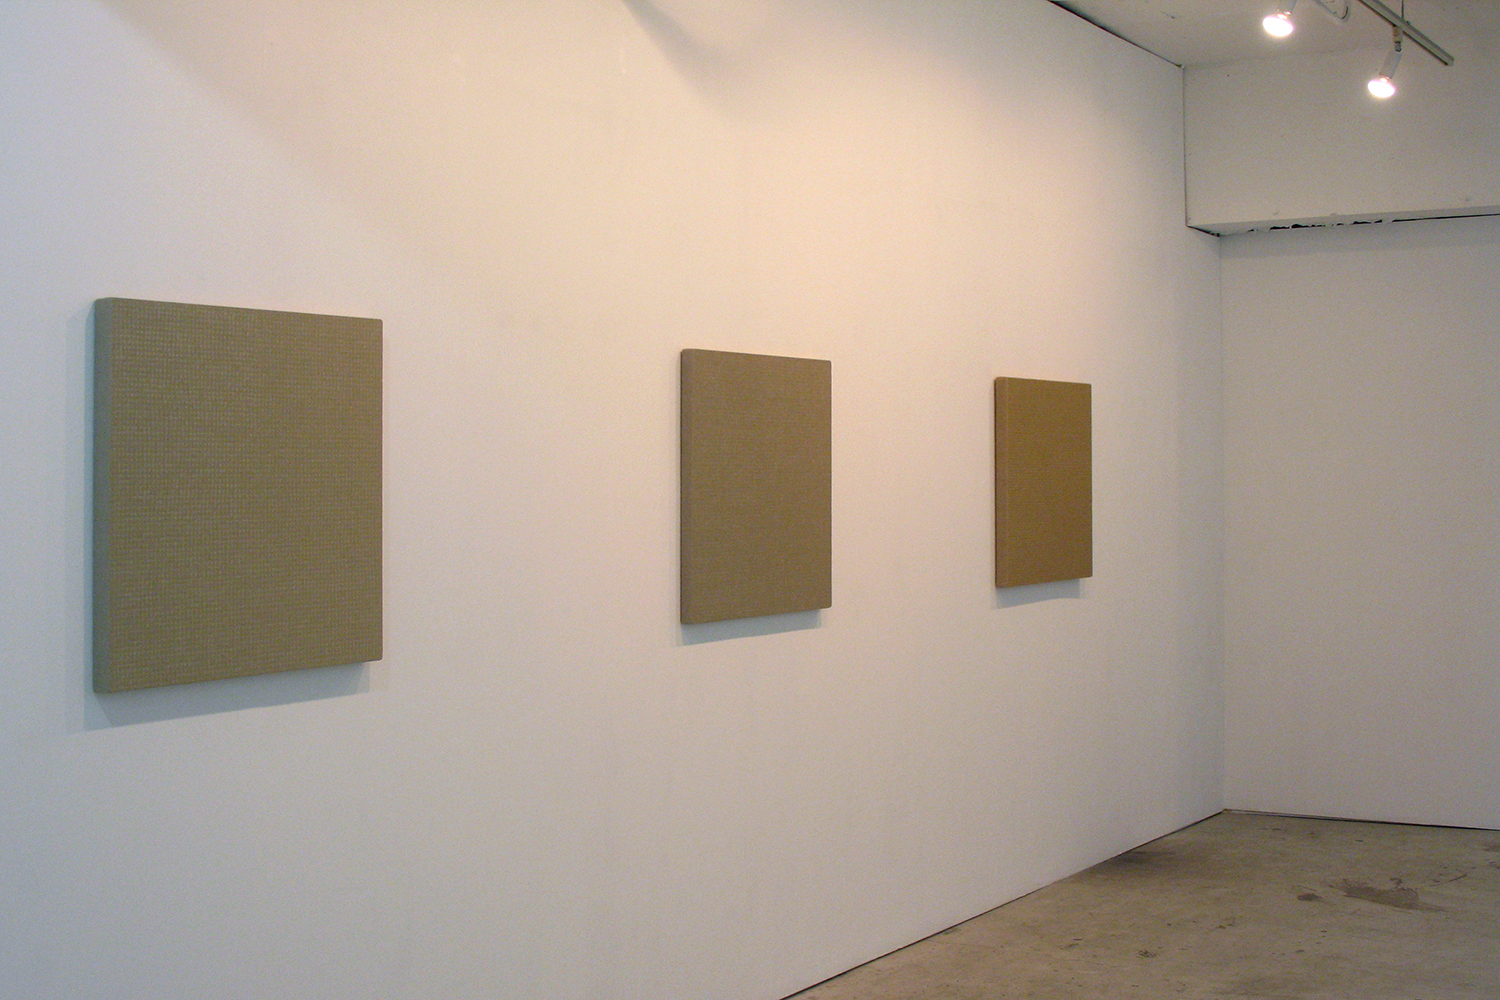 Installation view<br>Hemp-square series|Acylic on canvas|72.5 x 72.5 cm|2008 each